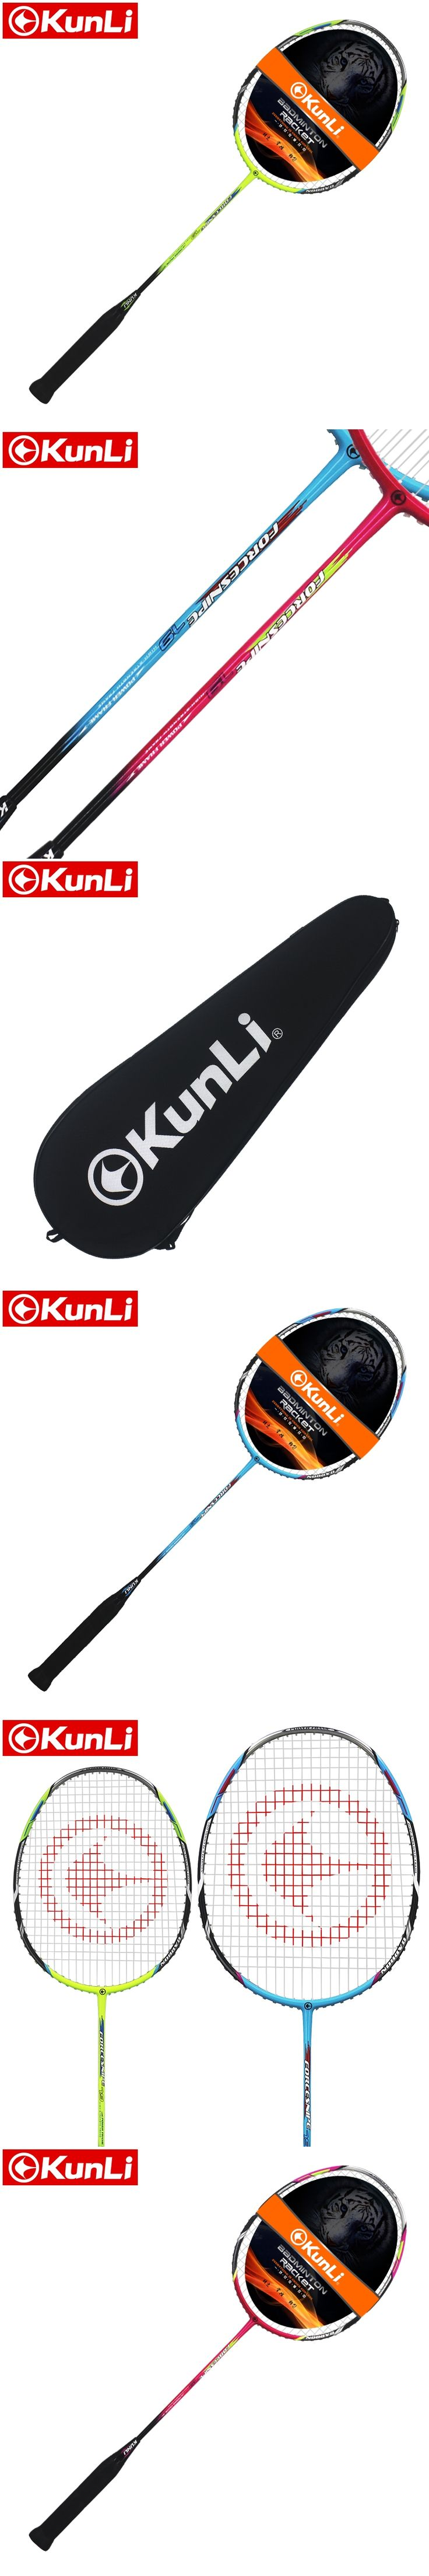 free shipping 100%original KUNLI badminton racket FORCE 79 full carbon professional TB NANO technology feather racket